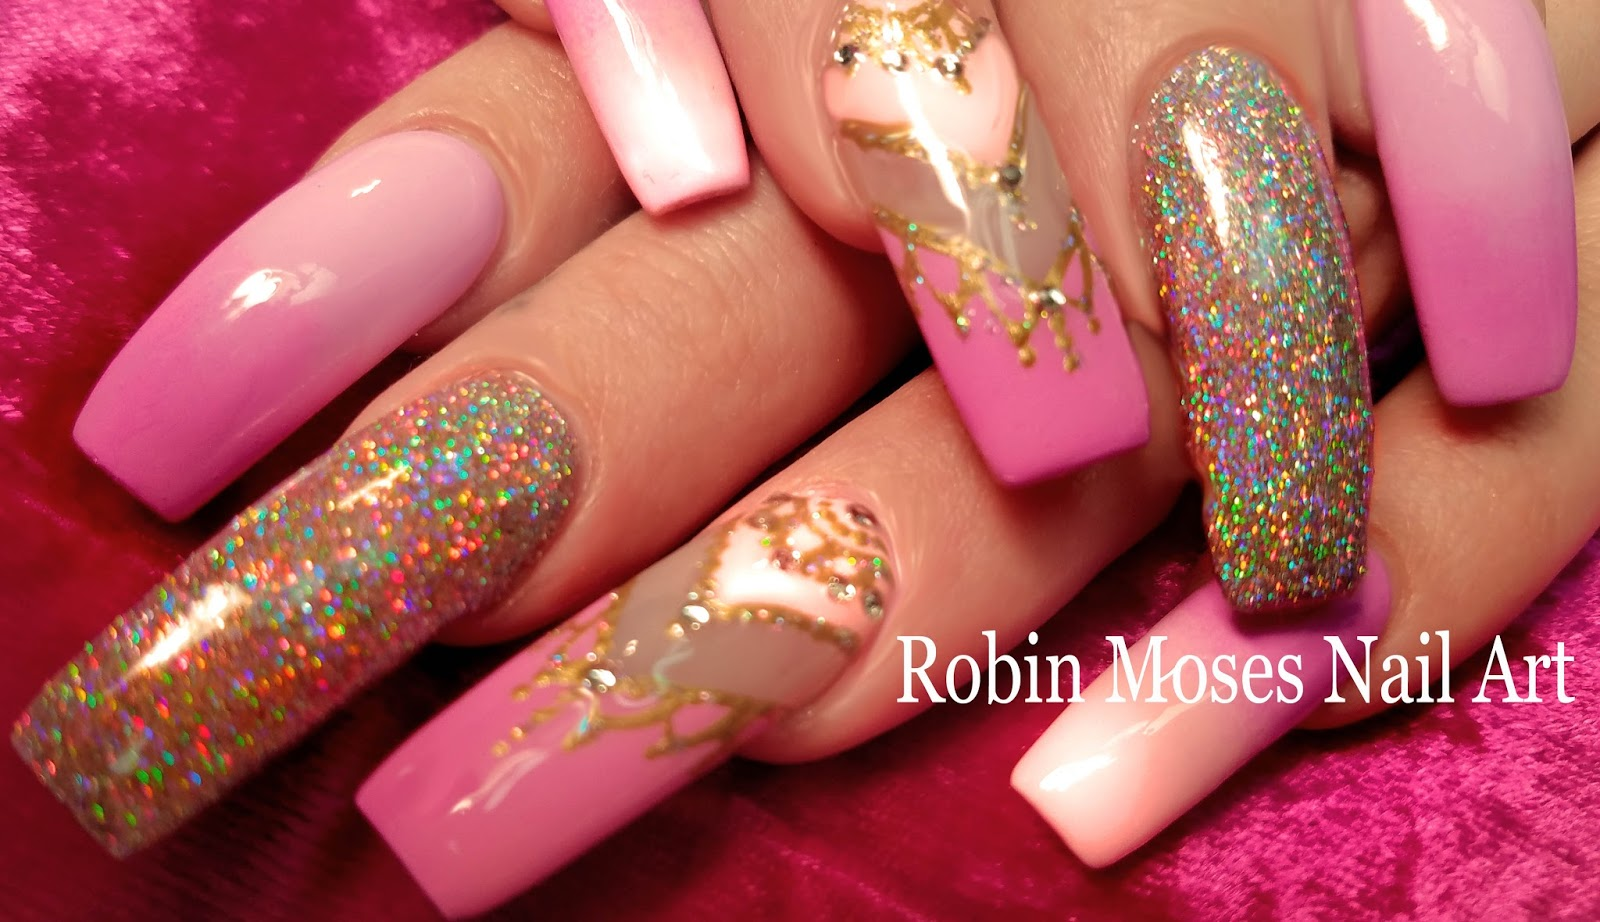 Robin Moses Nail Art Lush Holographic Glitter Nail With Pastel